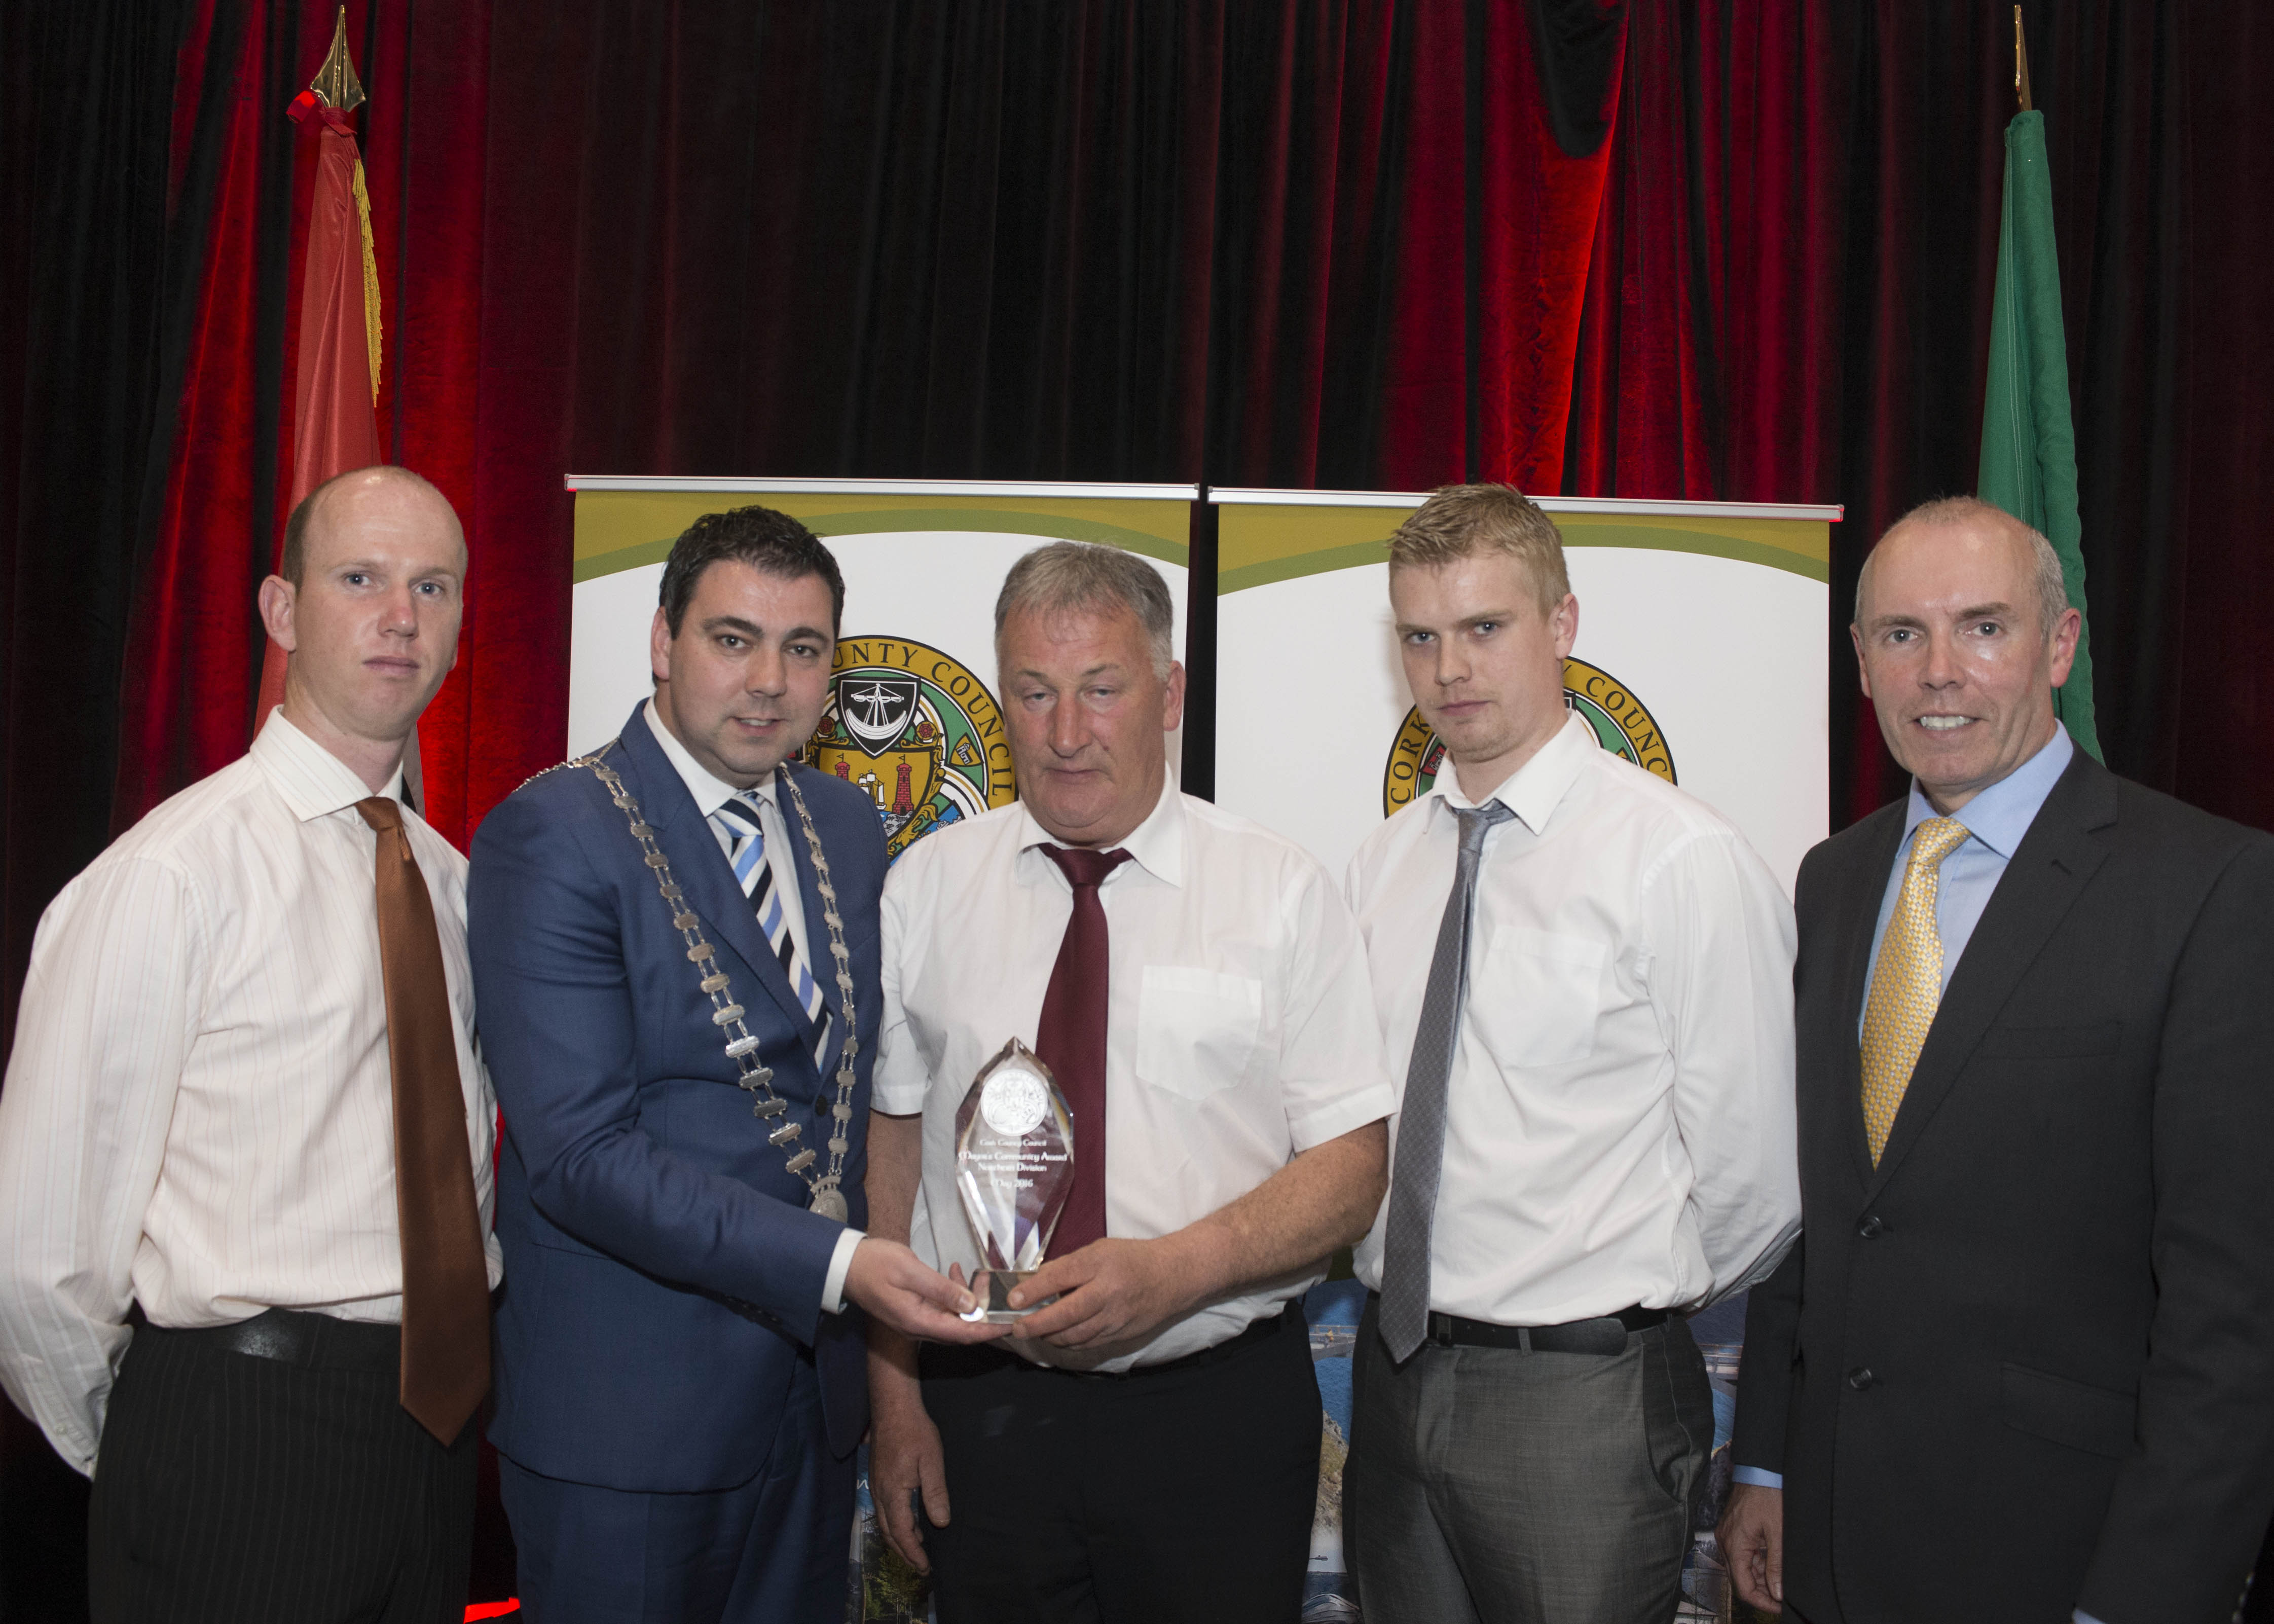 Knocknagree & Mallow To Benefit from CLÁR funding for 70 First Responder Organisations in rural areas